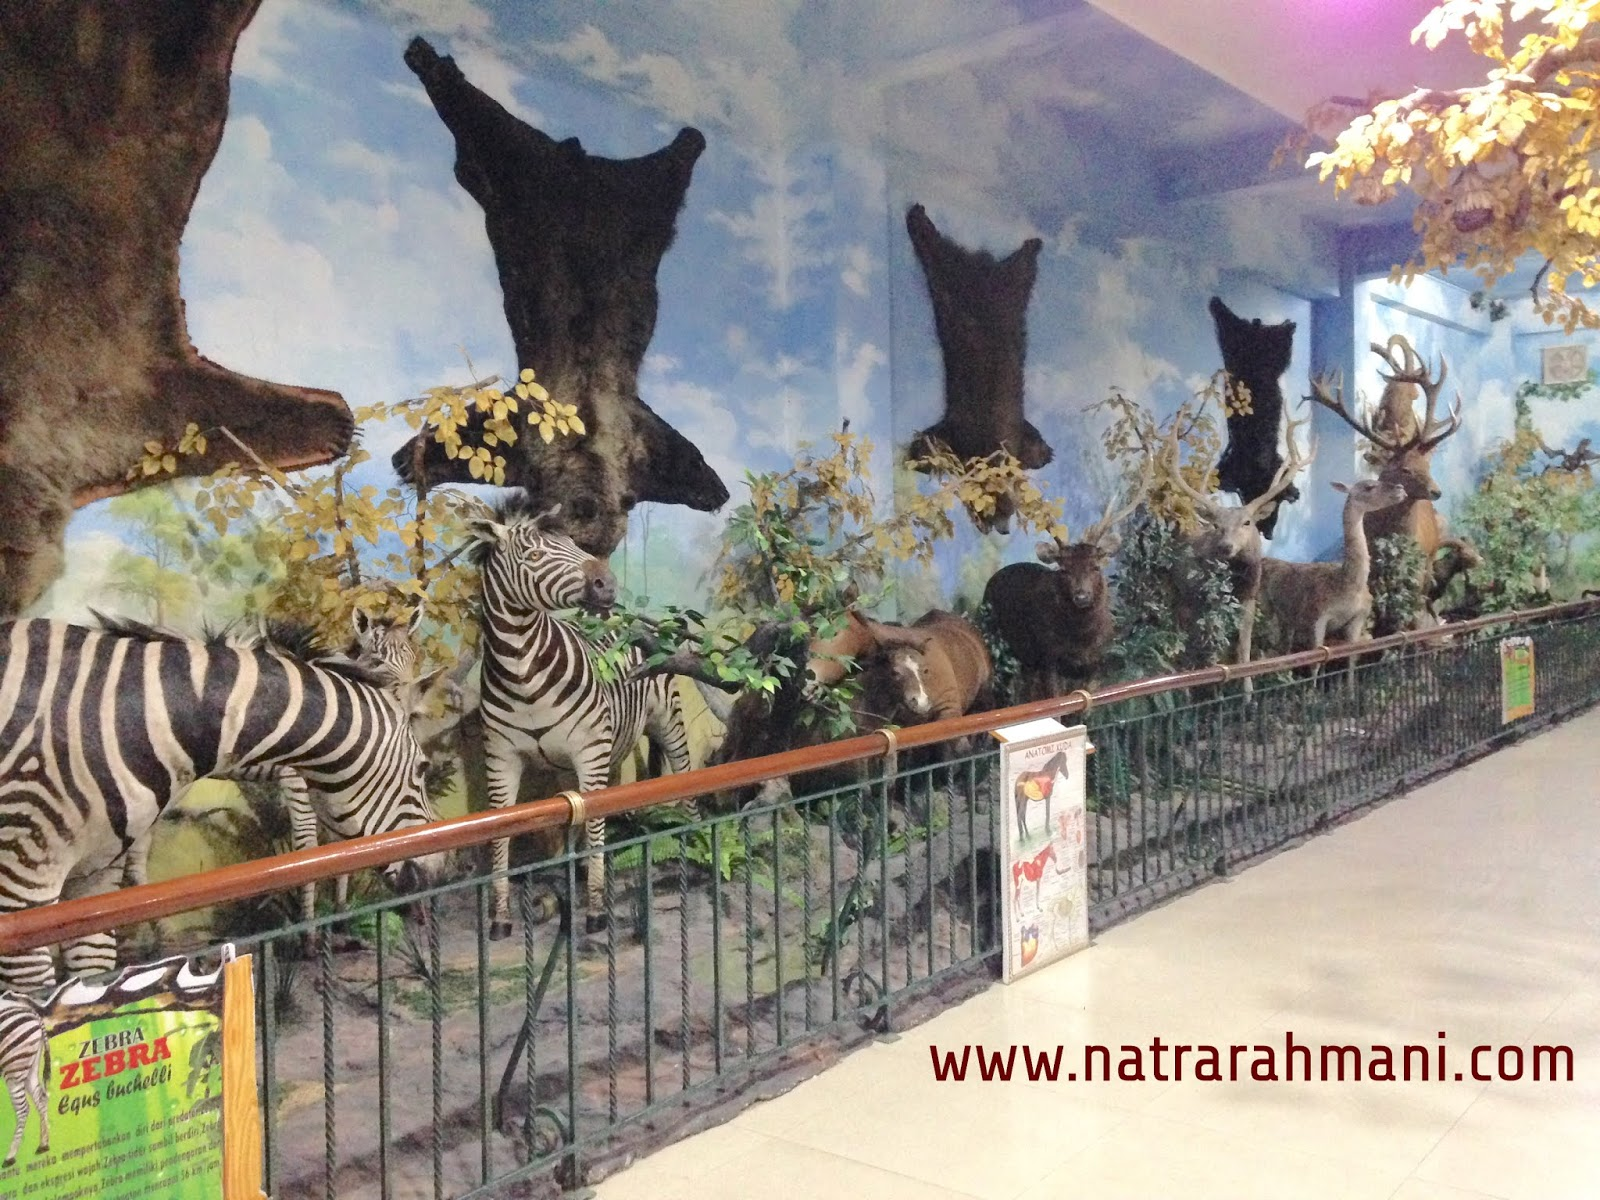 rahmat-international-wildlife-museum-gallery